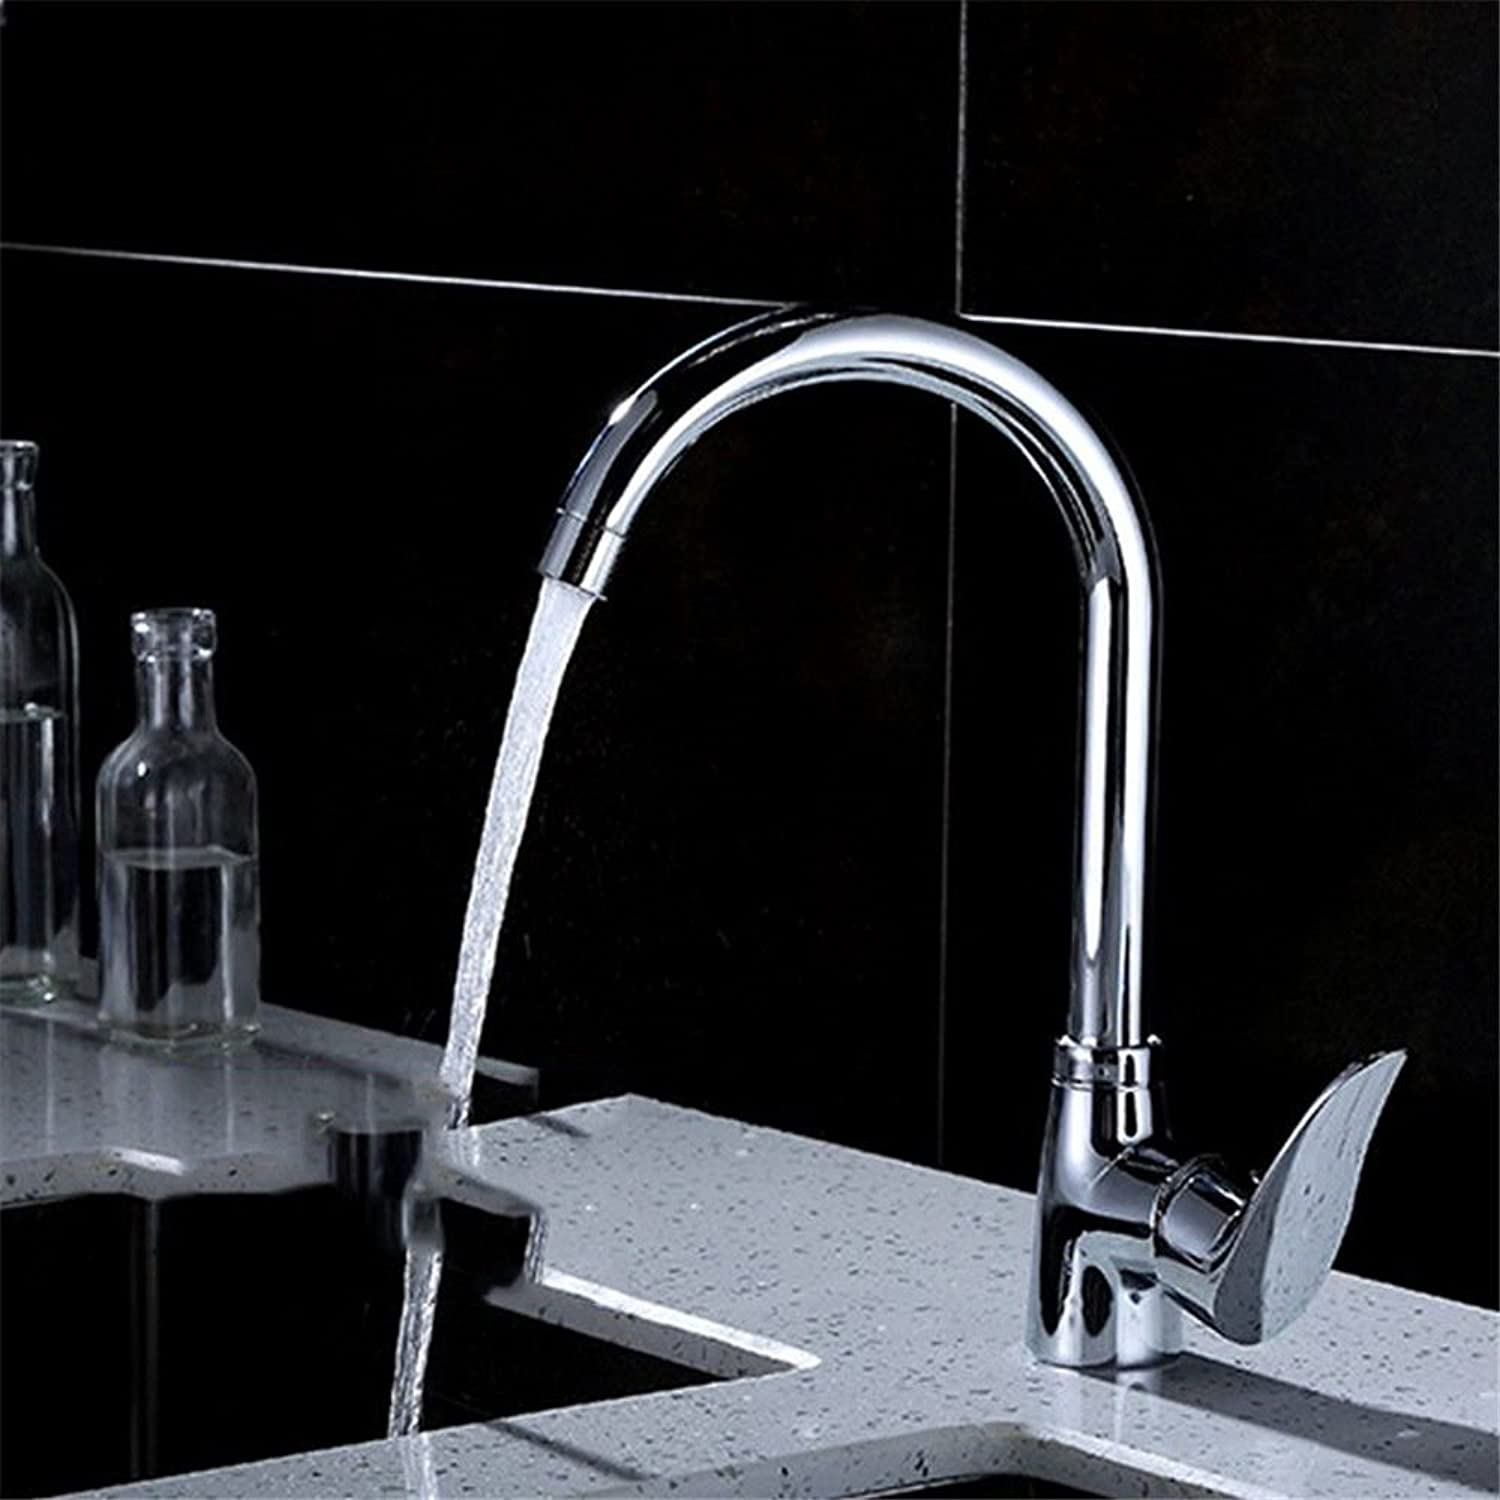 Bijjaladeva Antique Kitchen Sink Mixer Tap The Kitchen Sink Full Copper Cold-hot-Cold-Water Washing Dishes in a Bathtub Faucet A